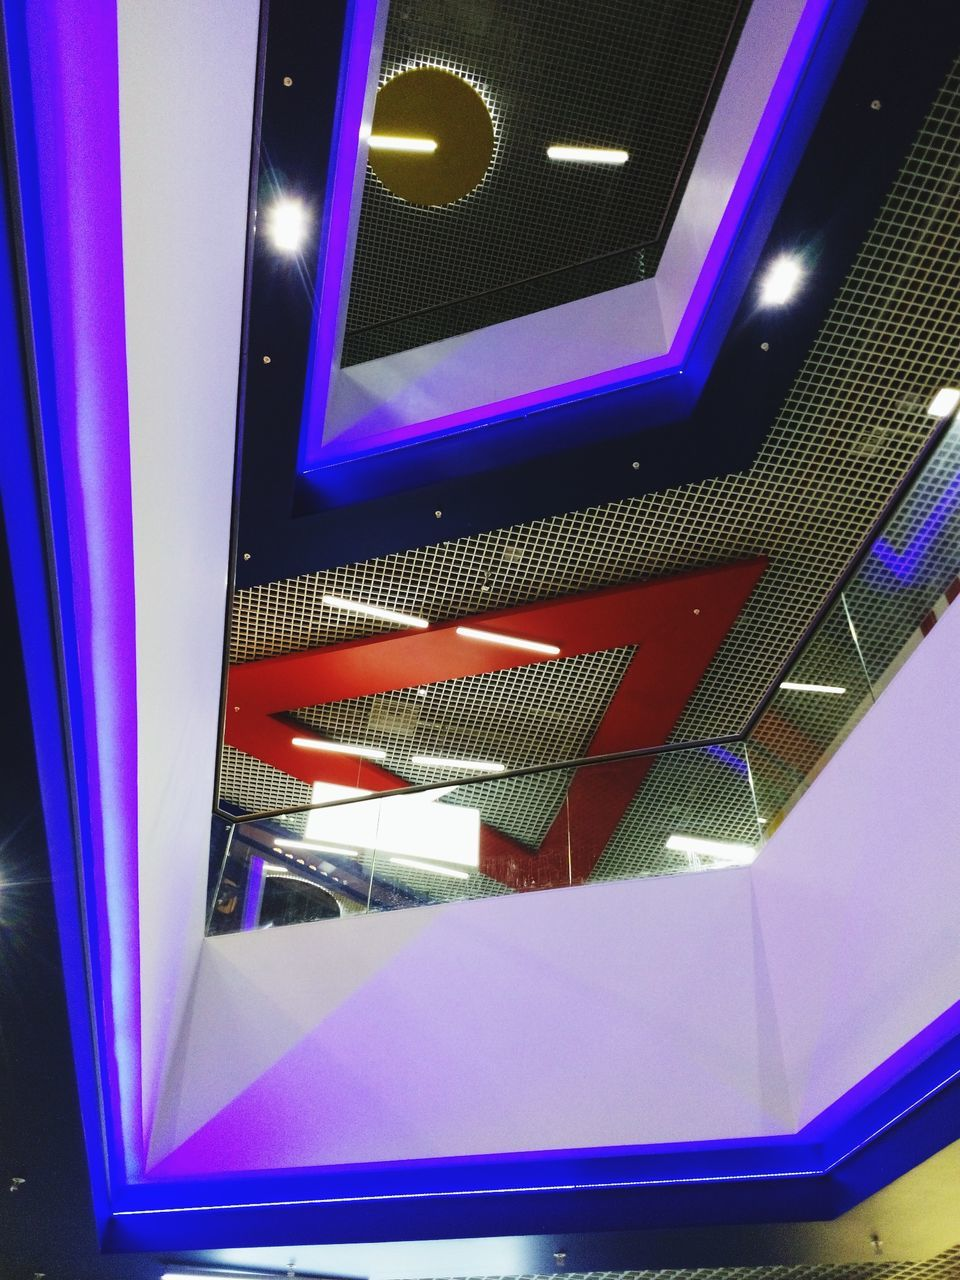 illuminated, indoors, purple, architecture, no people, built structure, close-up, day